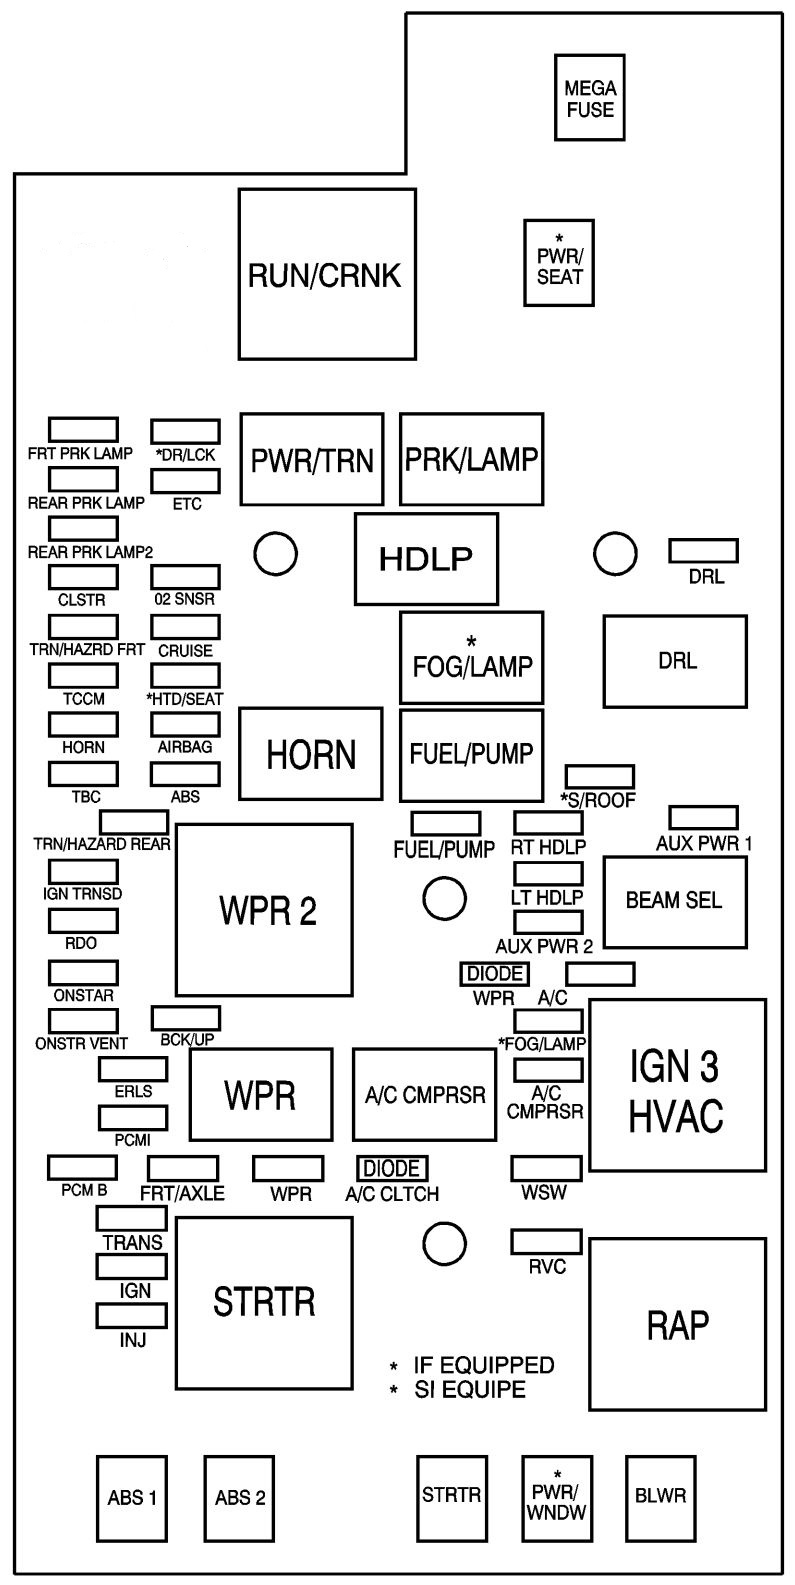 hight resolution of 2007 chevy hhr fuse box diagram wiring diagram source dodge charger fuse box diagram 2008 hhr